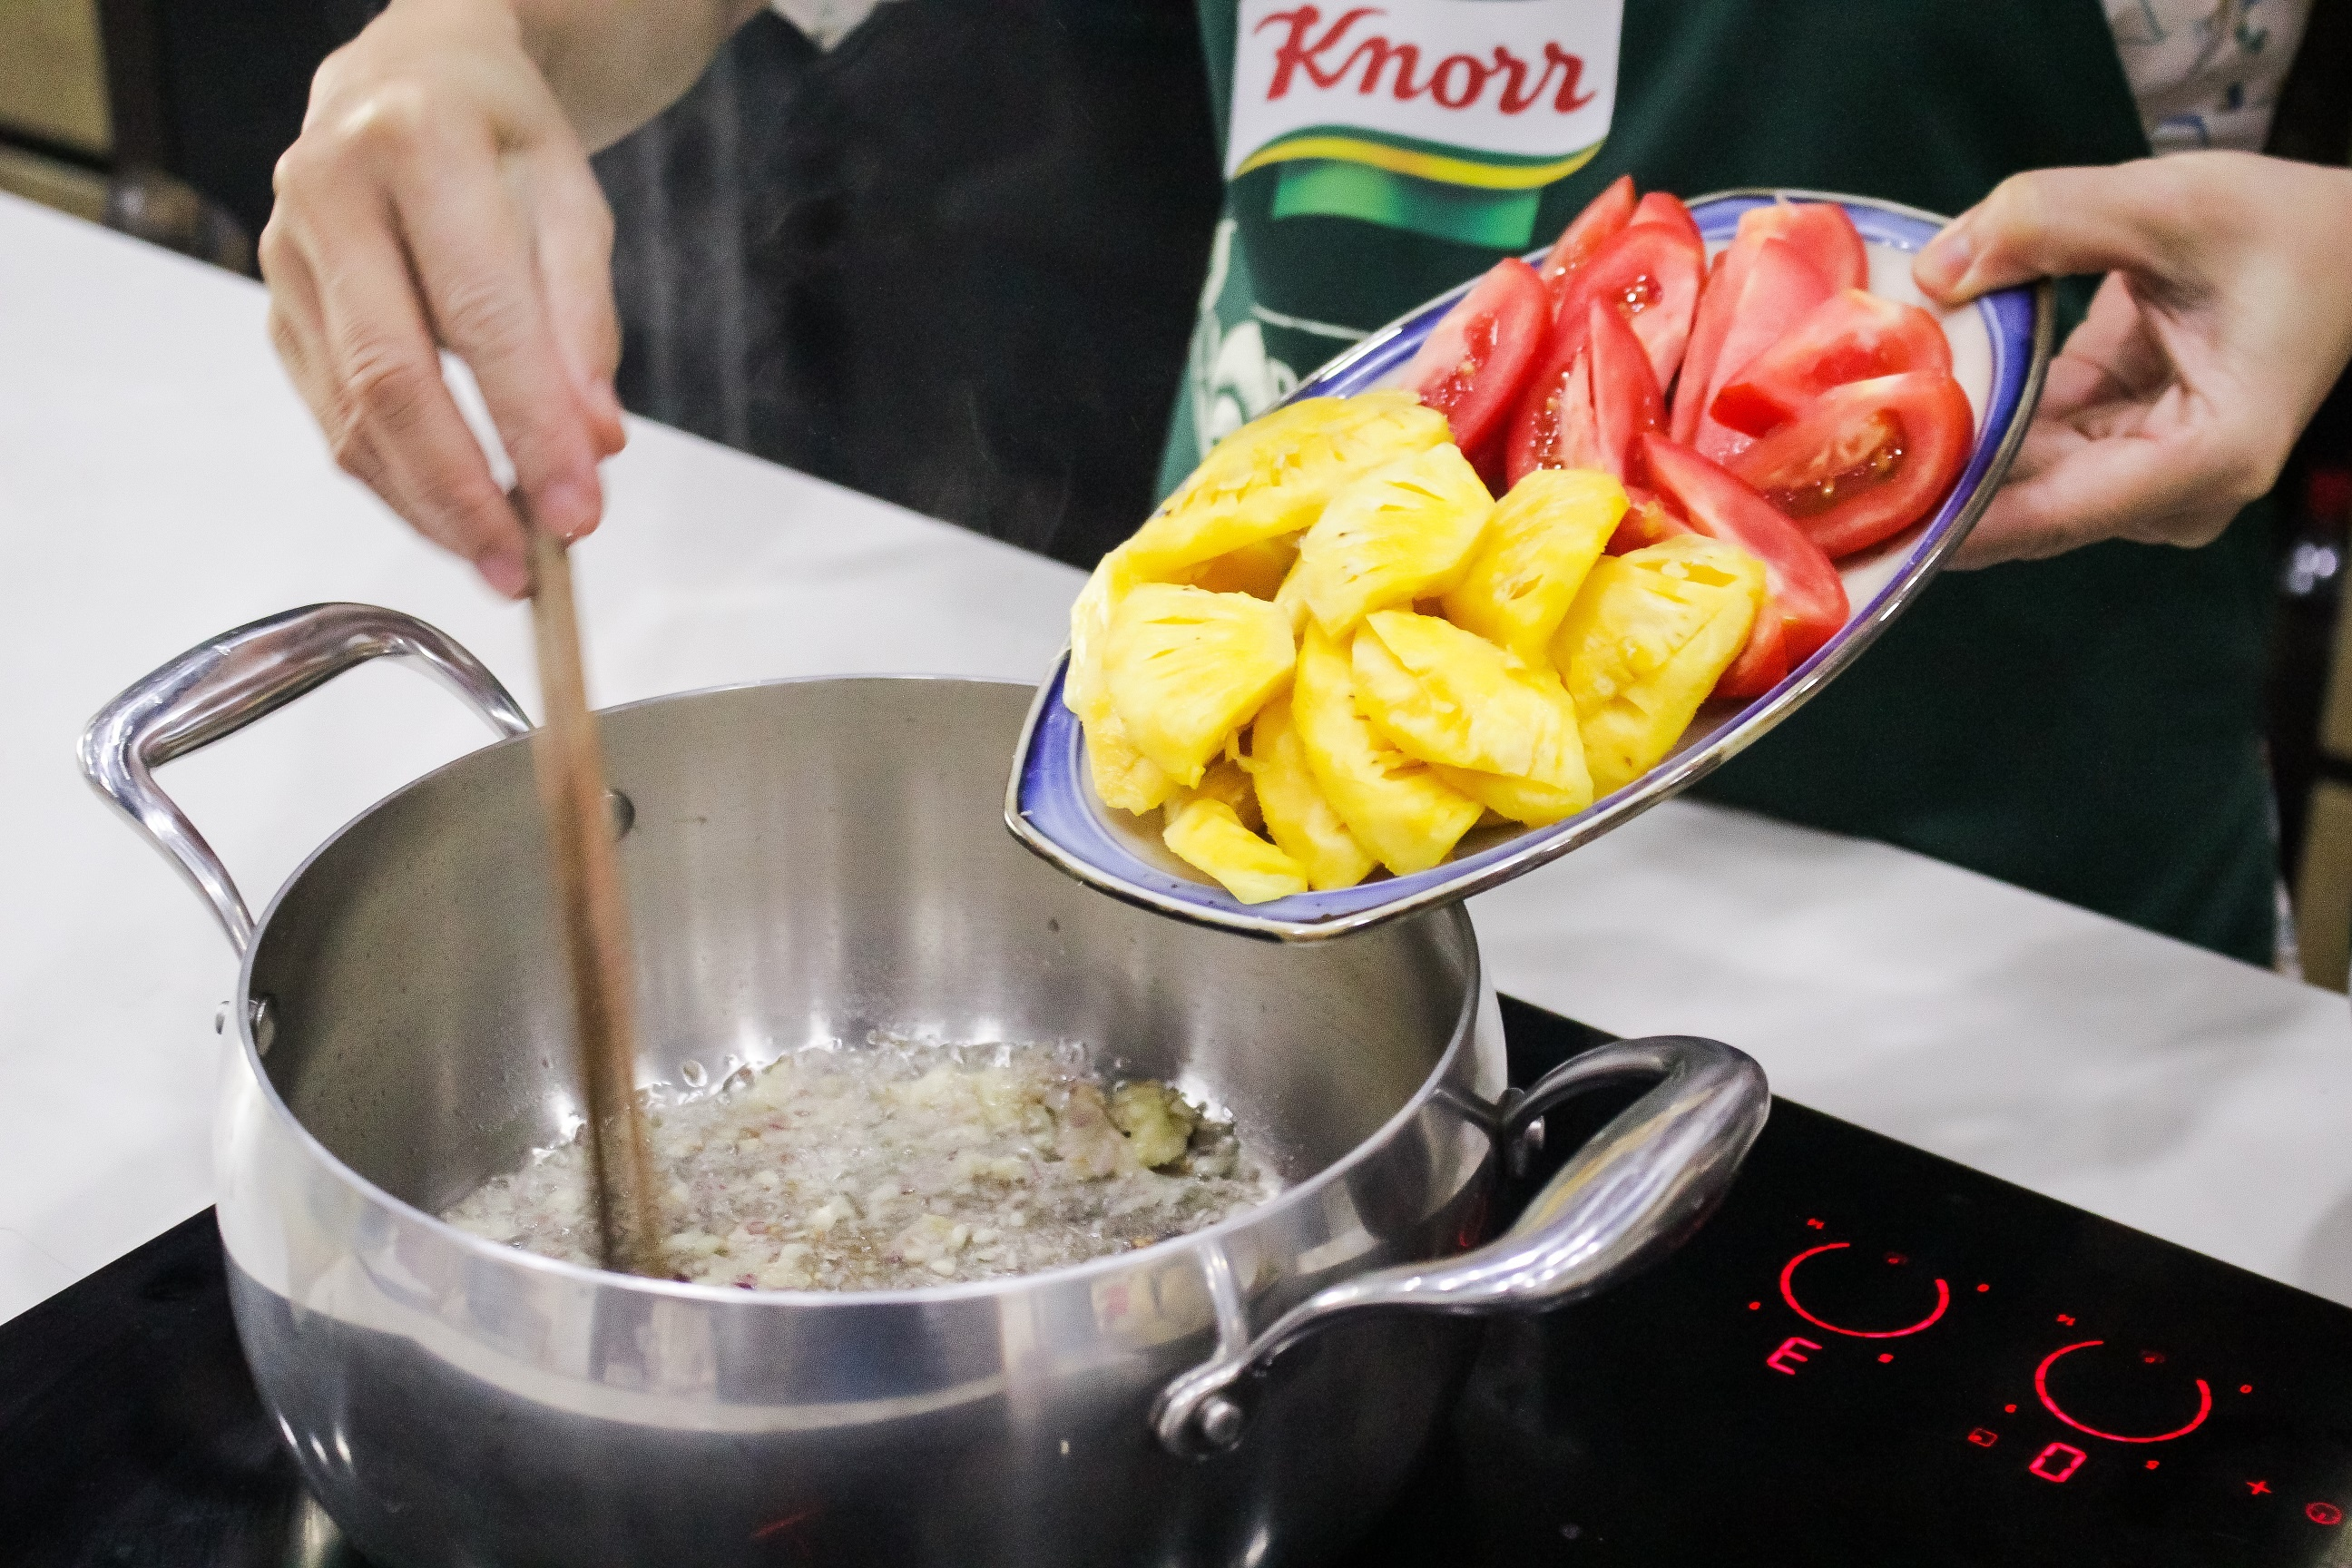 Knorr anh 5